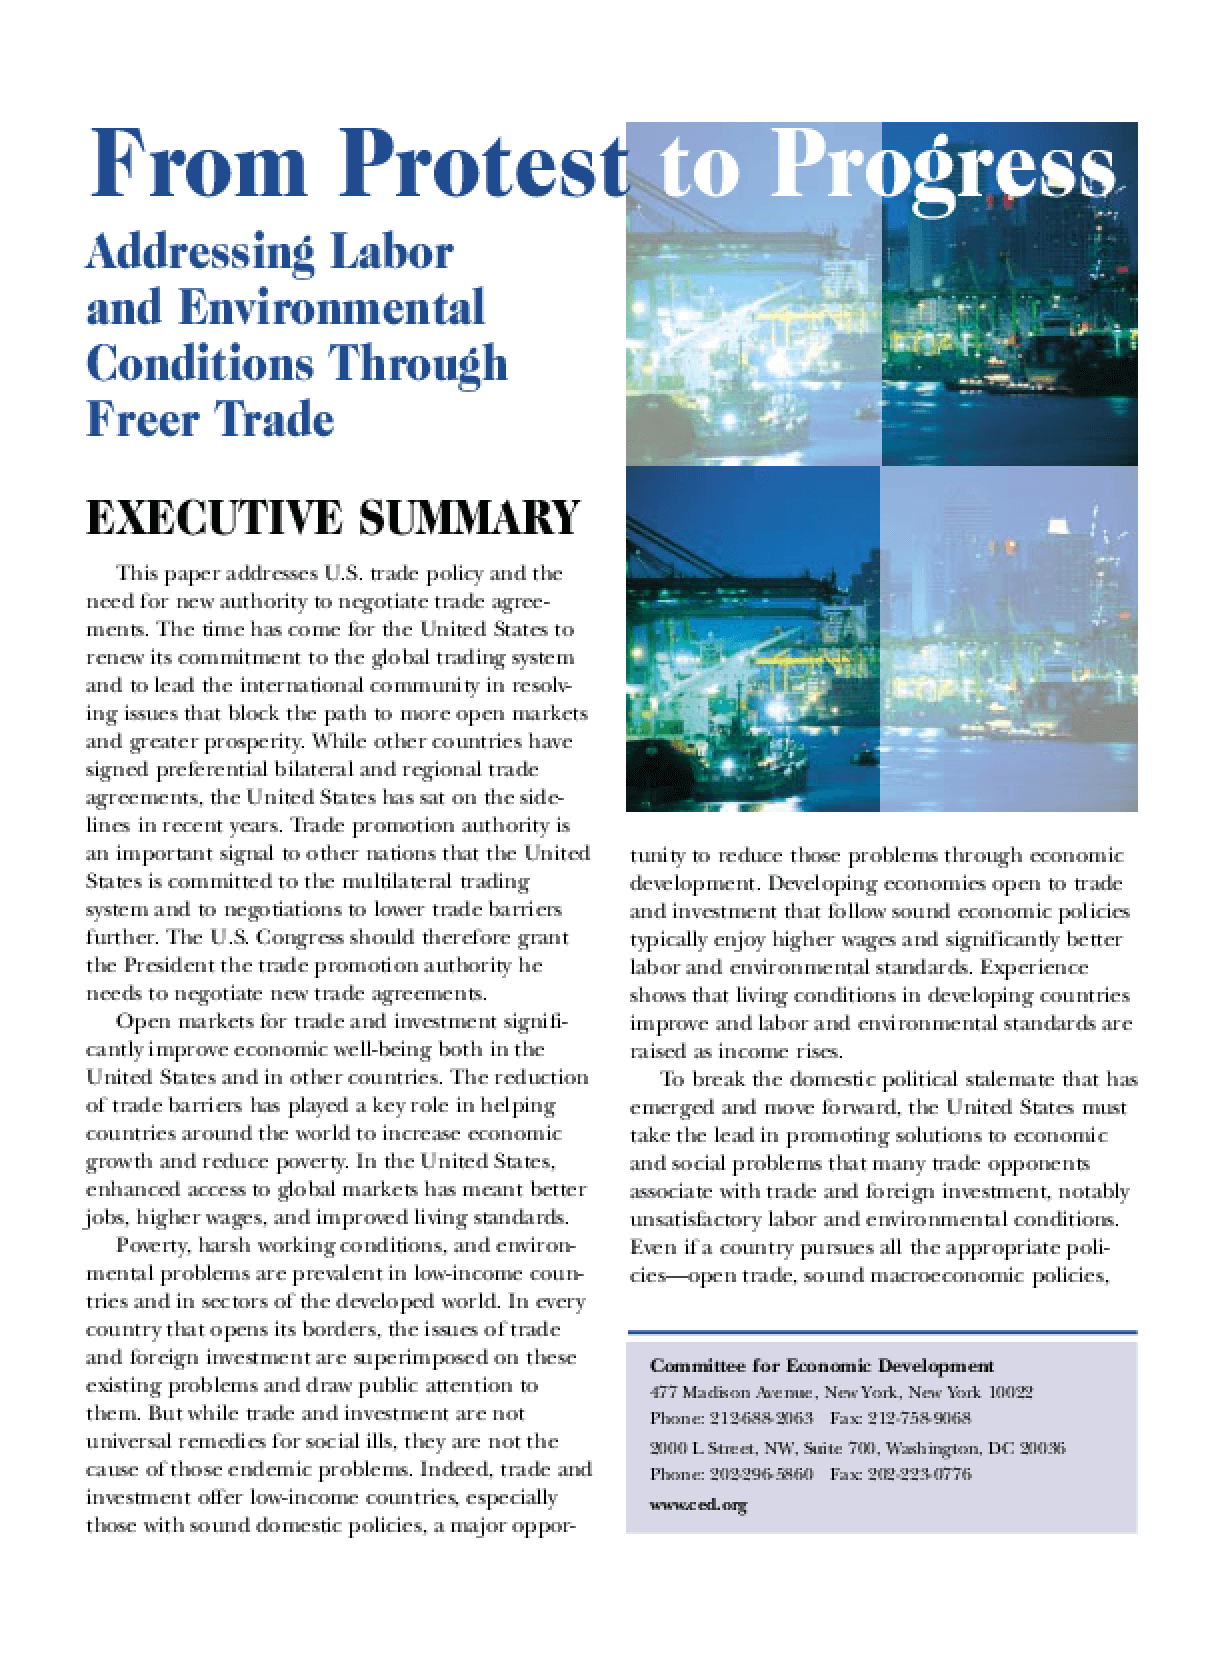 From Protest to Progress: Addressing Labor and Environmental Conditions Through Freer Trade - Executive Summary